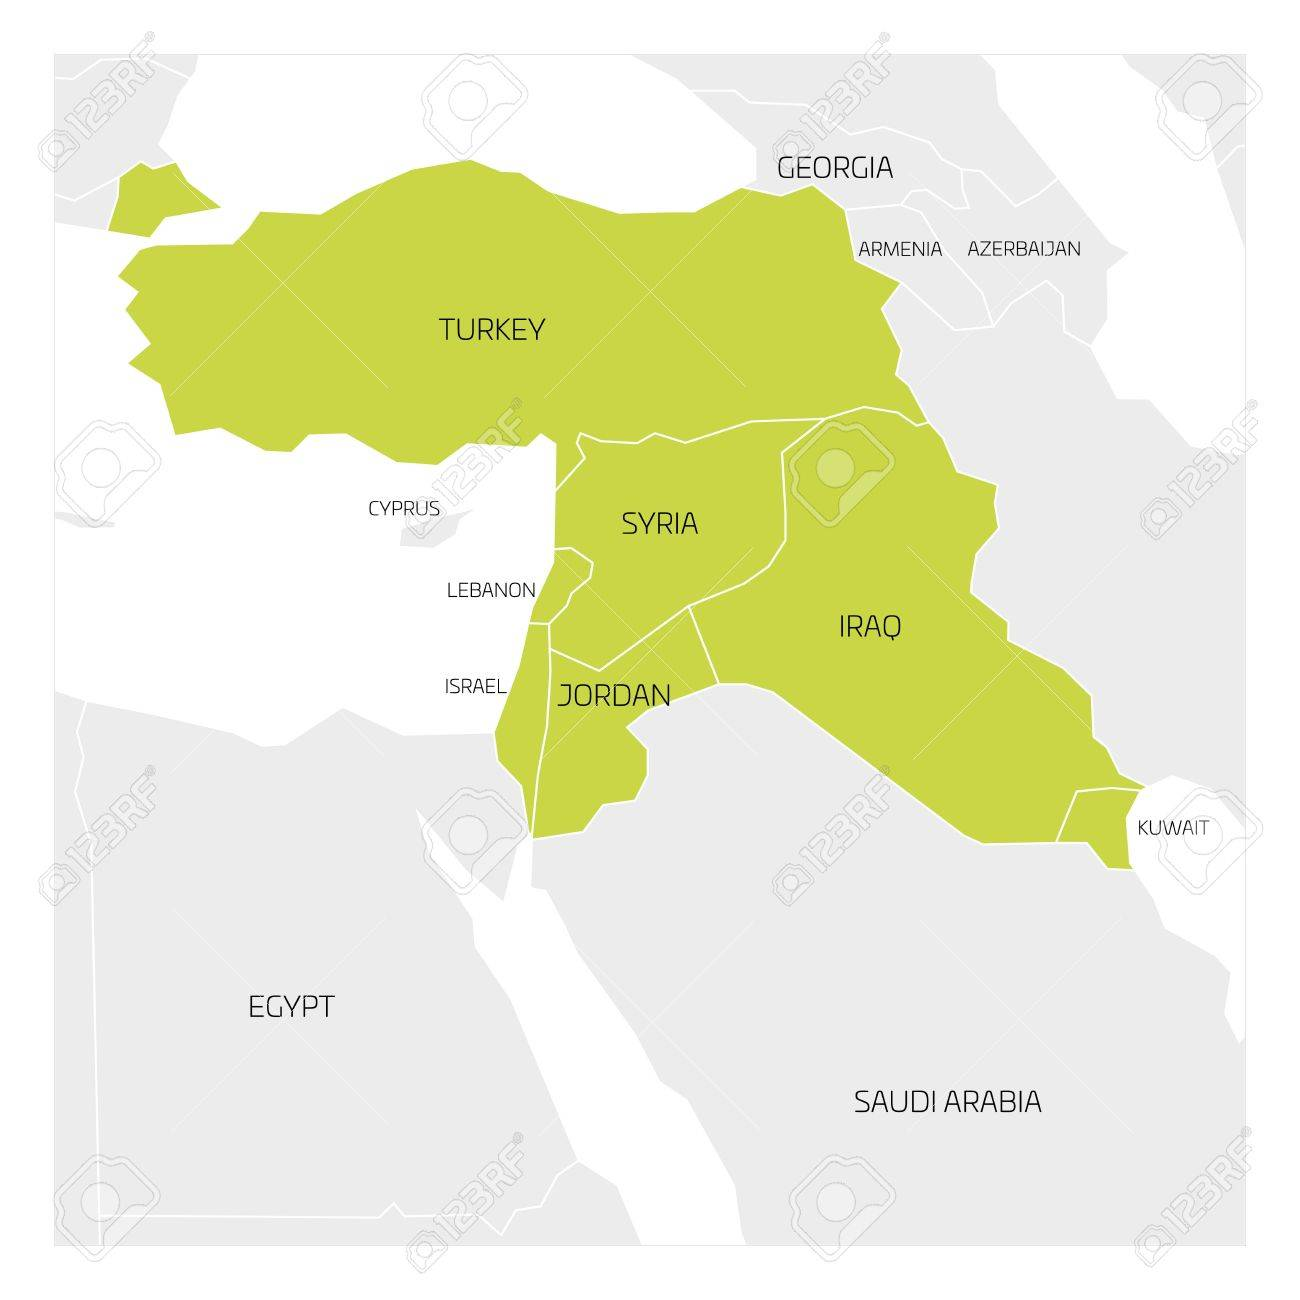 Map Of Middle East Or Near East Transcontinental Region With - Map of egypt jordan and syria